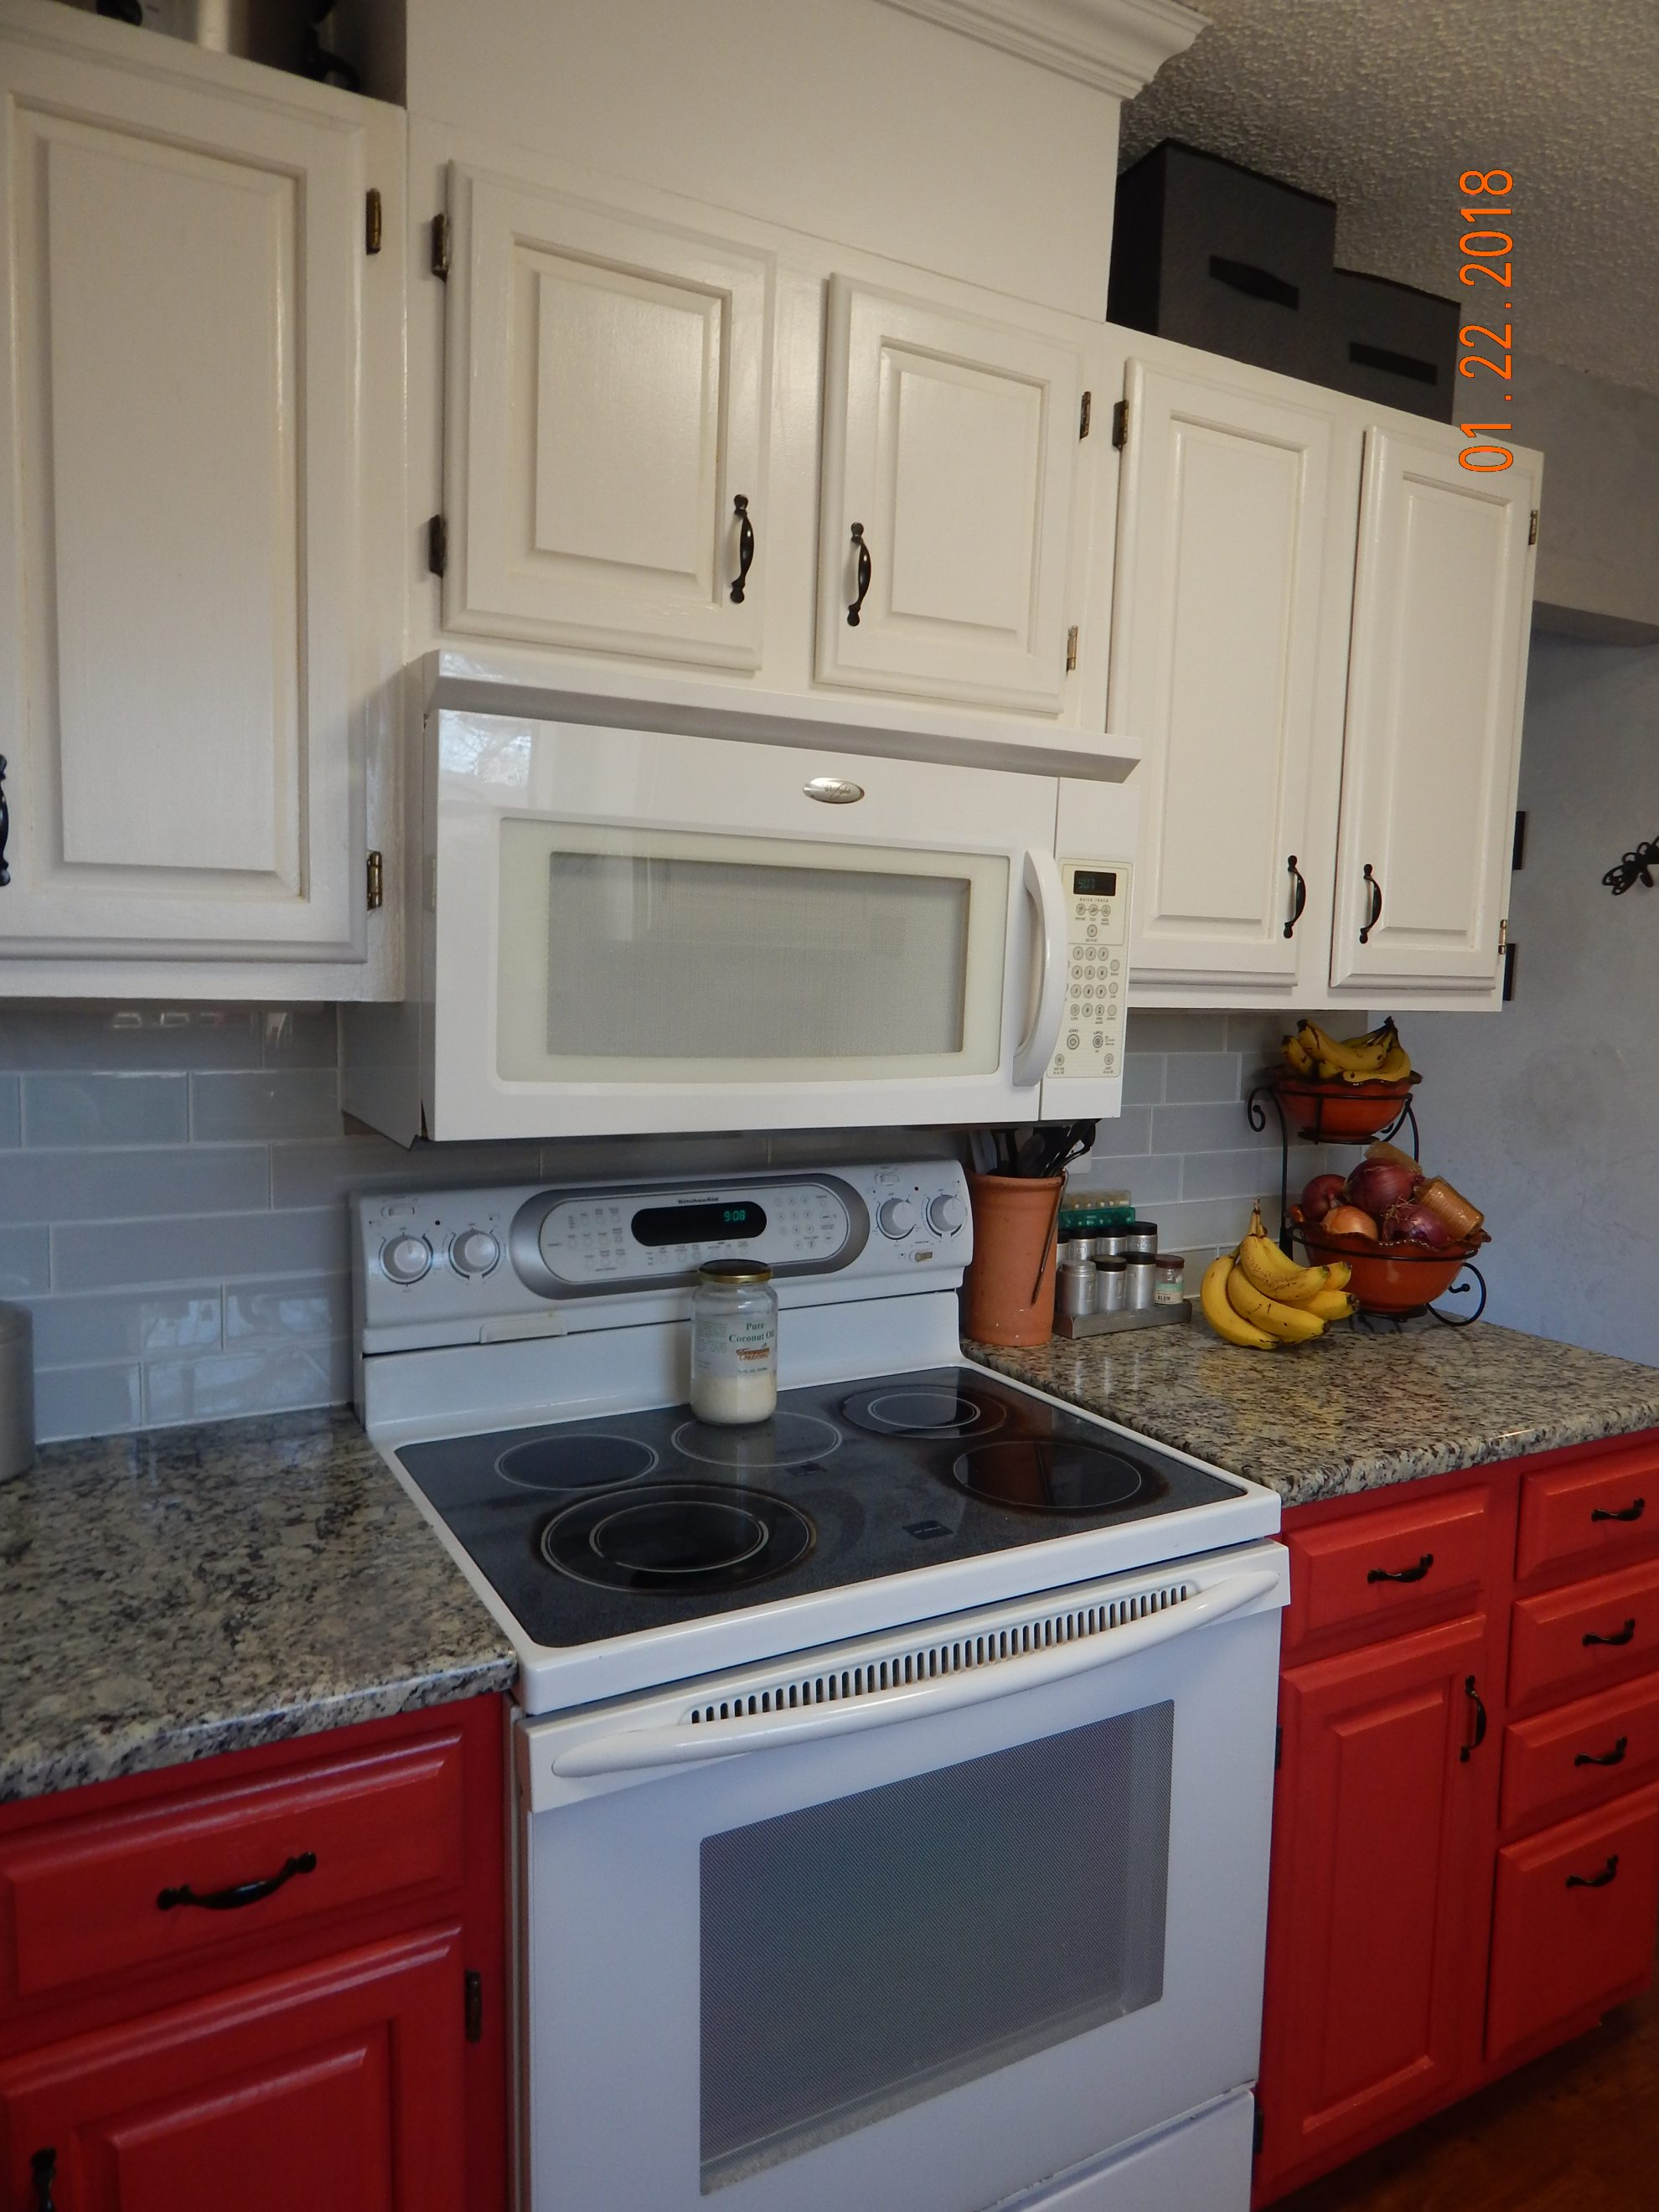 Do you feel like your kitchen is too tiny to cook in? Space is at a premium in my small 1,100 square foot home and I have a very tiny kitchen.